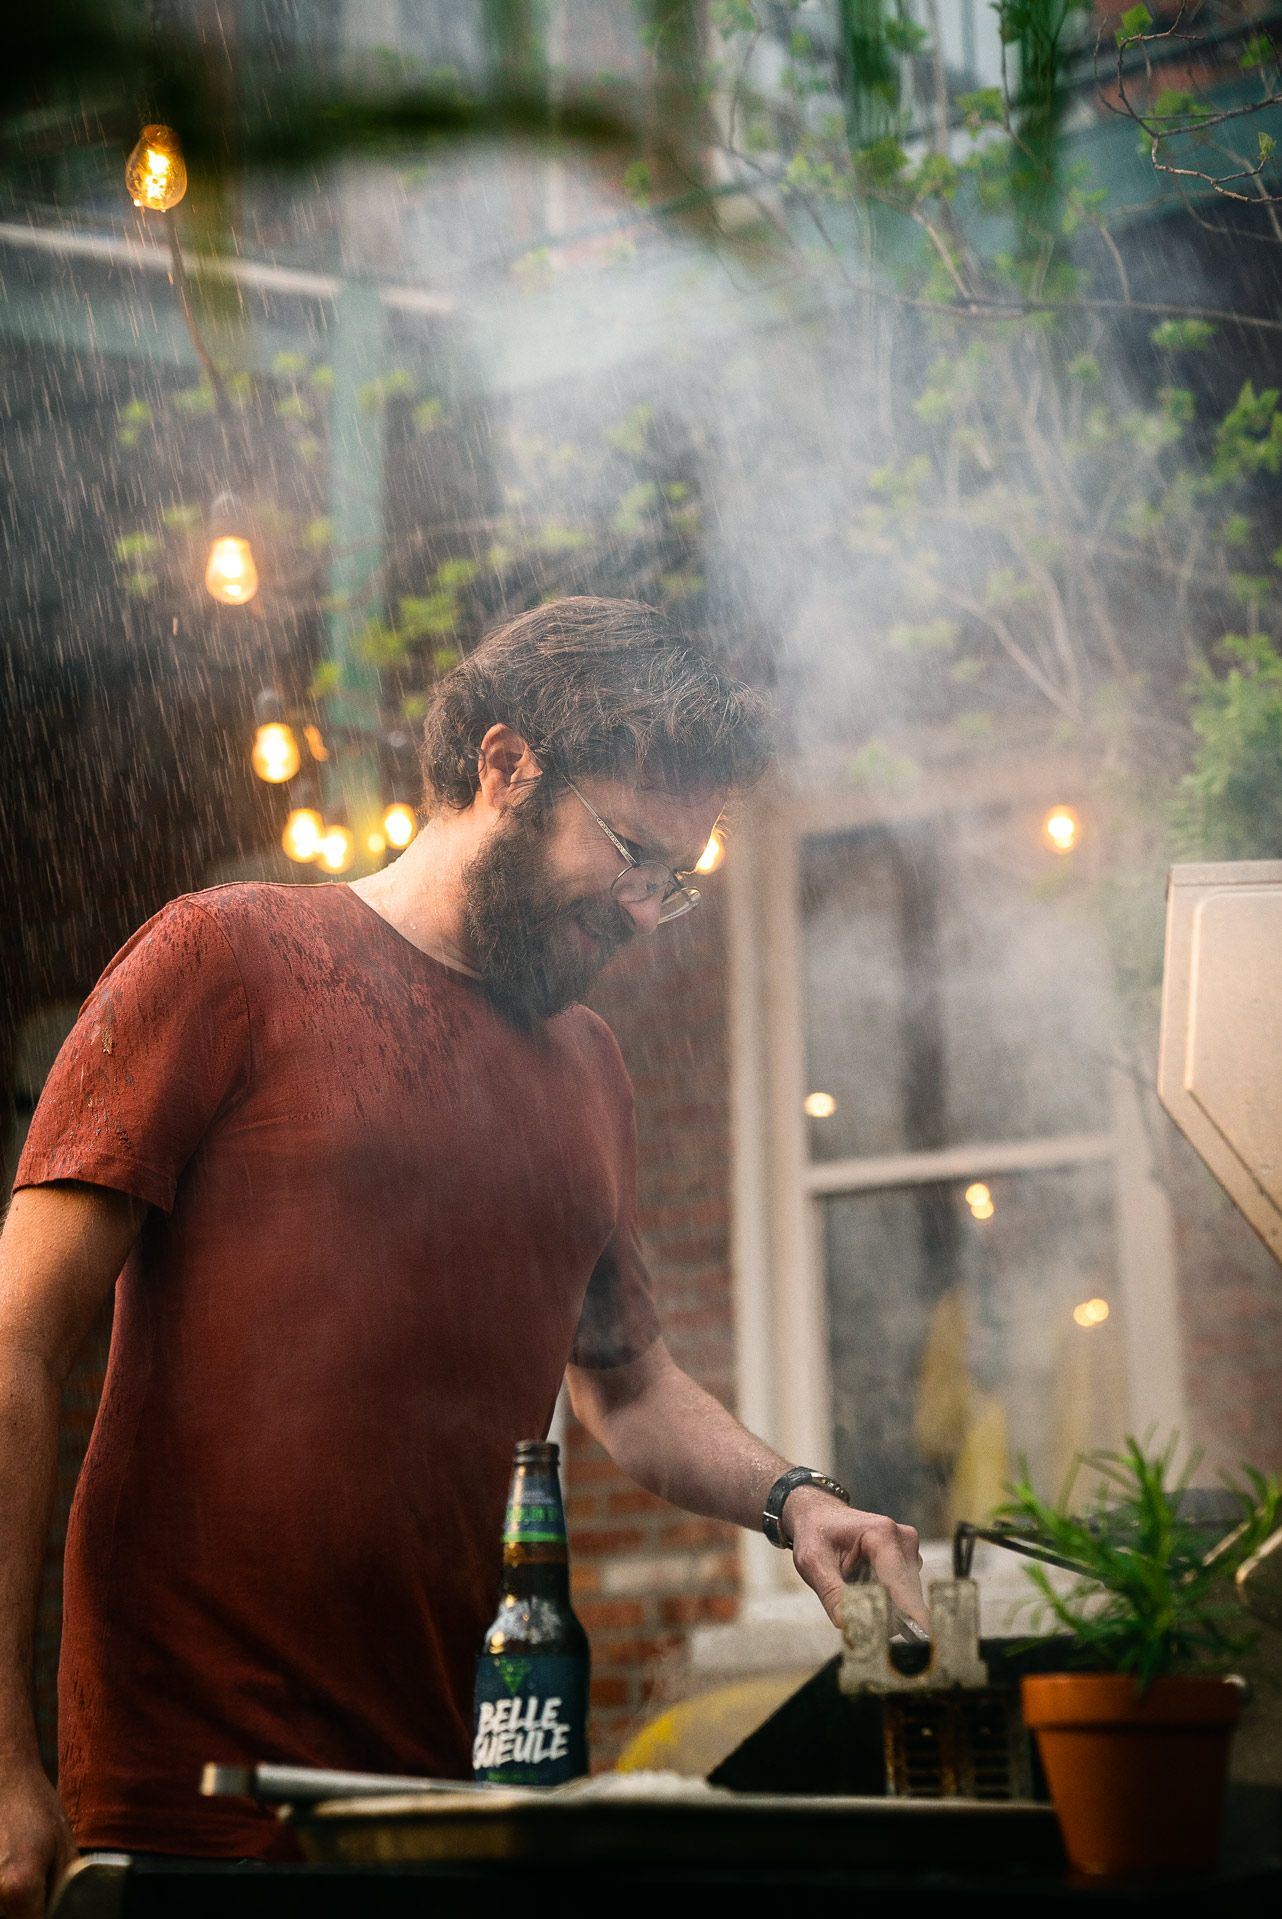 bearded man grilling in front of barbecue in the rain wearing blue jeans and wet red shirt with Belle Gueule bear next to him photographed by Bruno Florin for Belle Gueule with Forsman & Bodenfors